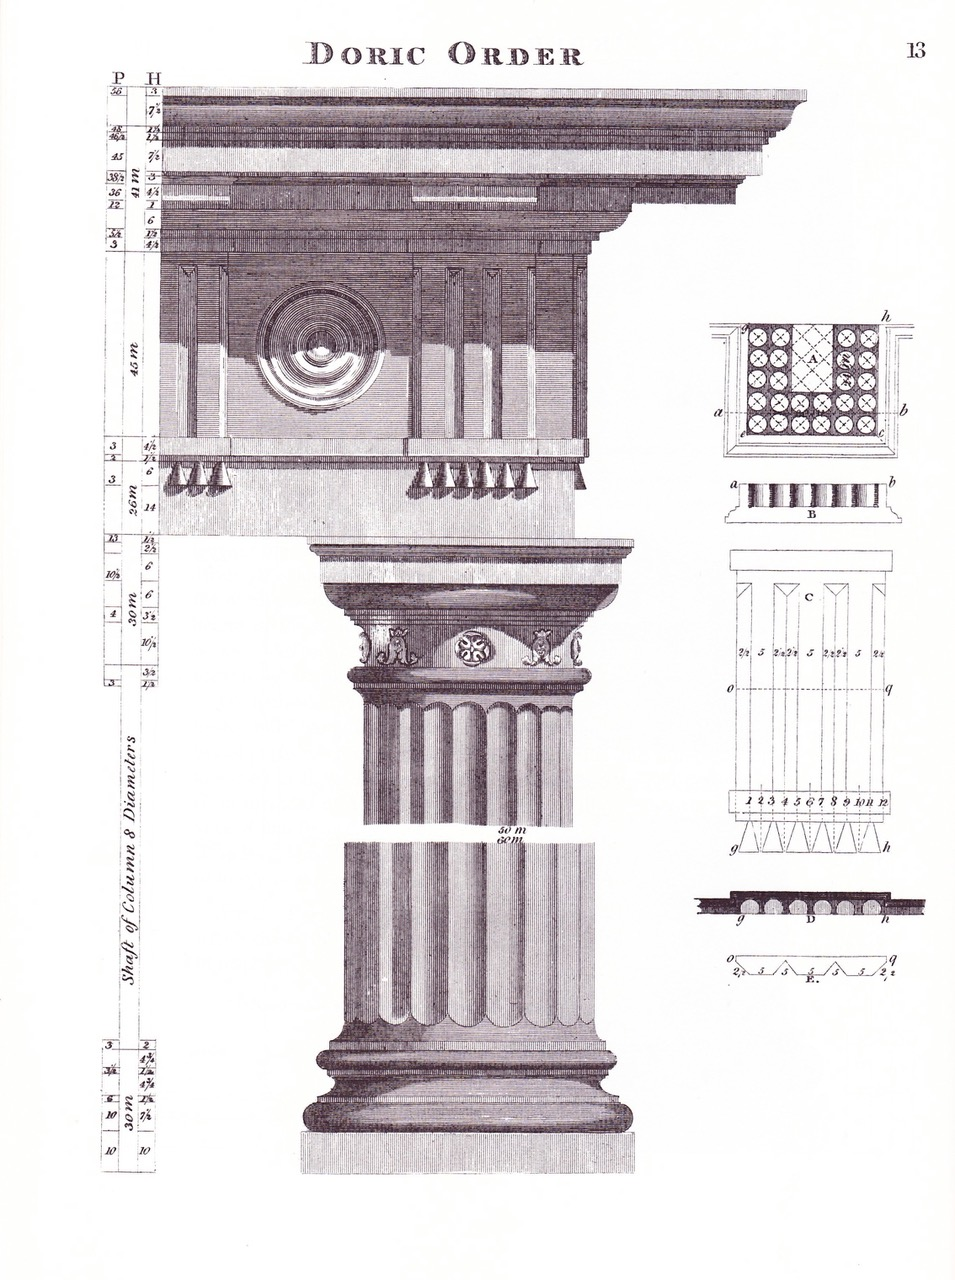 Plate showing the Doric order from  The American Builder's Companion.   Benjamin's Greek orders were clearly 'borrowed' from earlier European books on the    subject. The Doric was the simplest order and thus the easiest for rural carpenter architects to fashion, especially in wood.